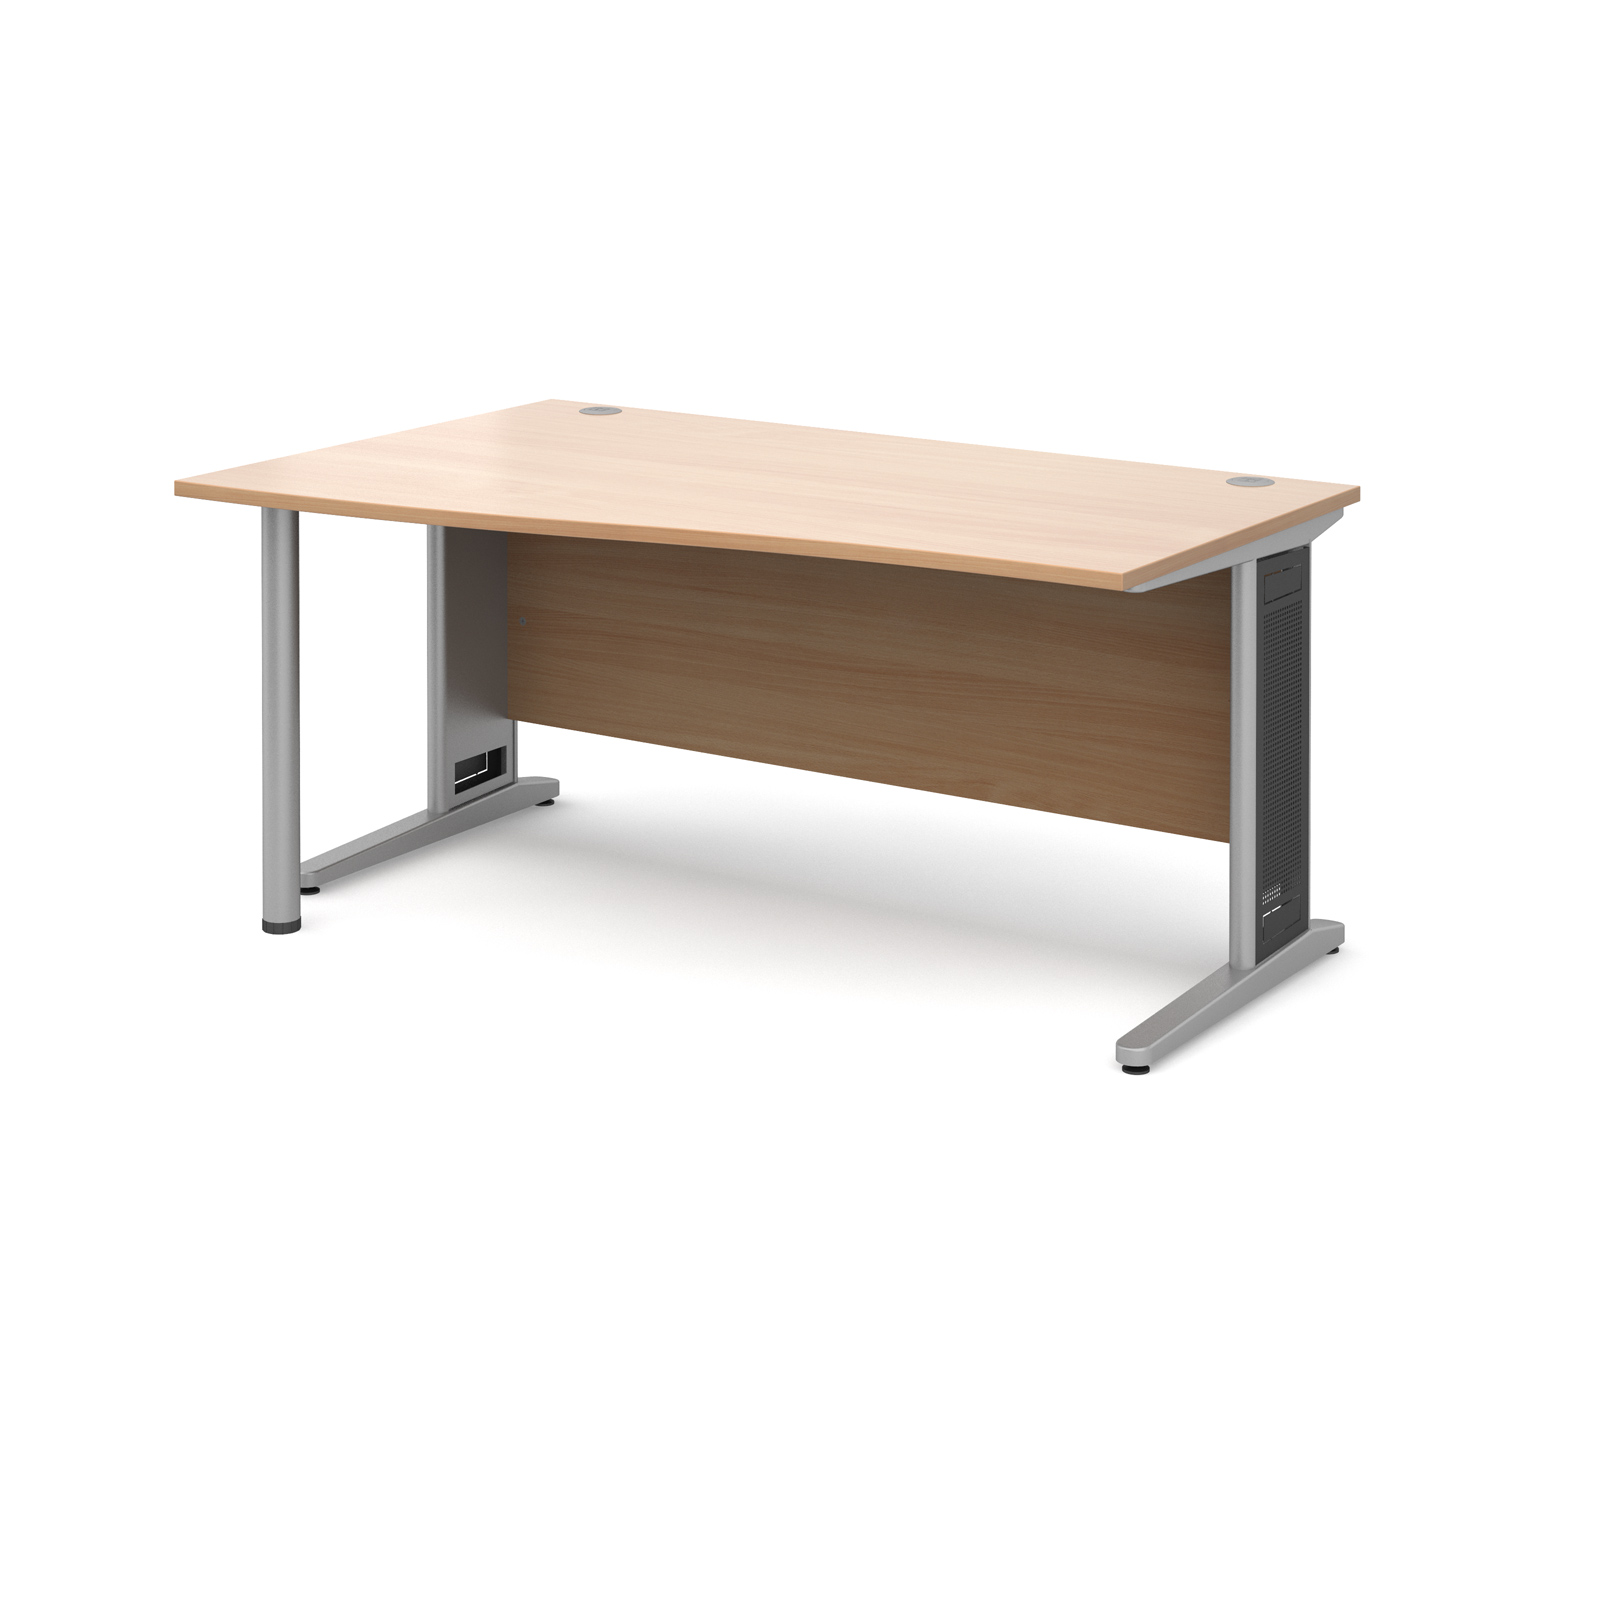 Largo left hand wave desk 1600mm - silver cantilever frame with removable grill, beech top